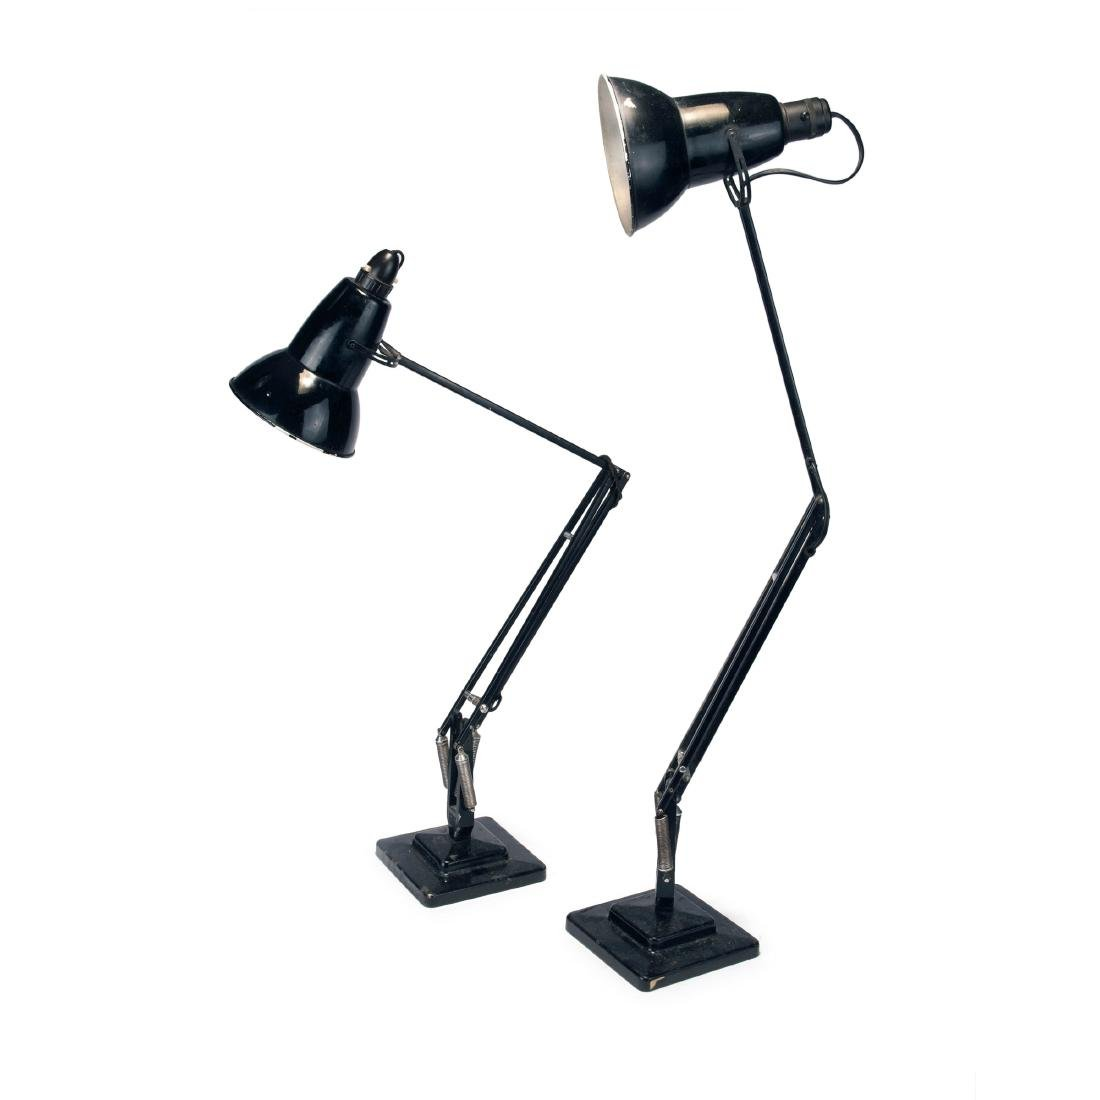 Two 'Anglepoise' table lights, 1934